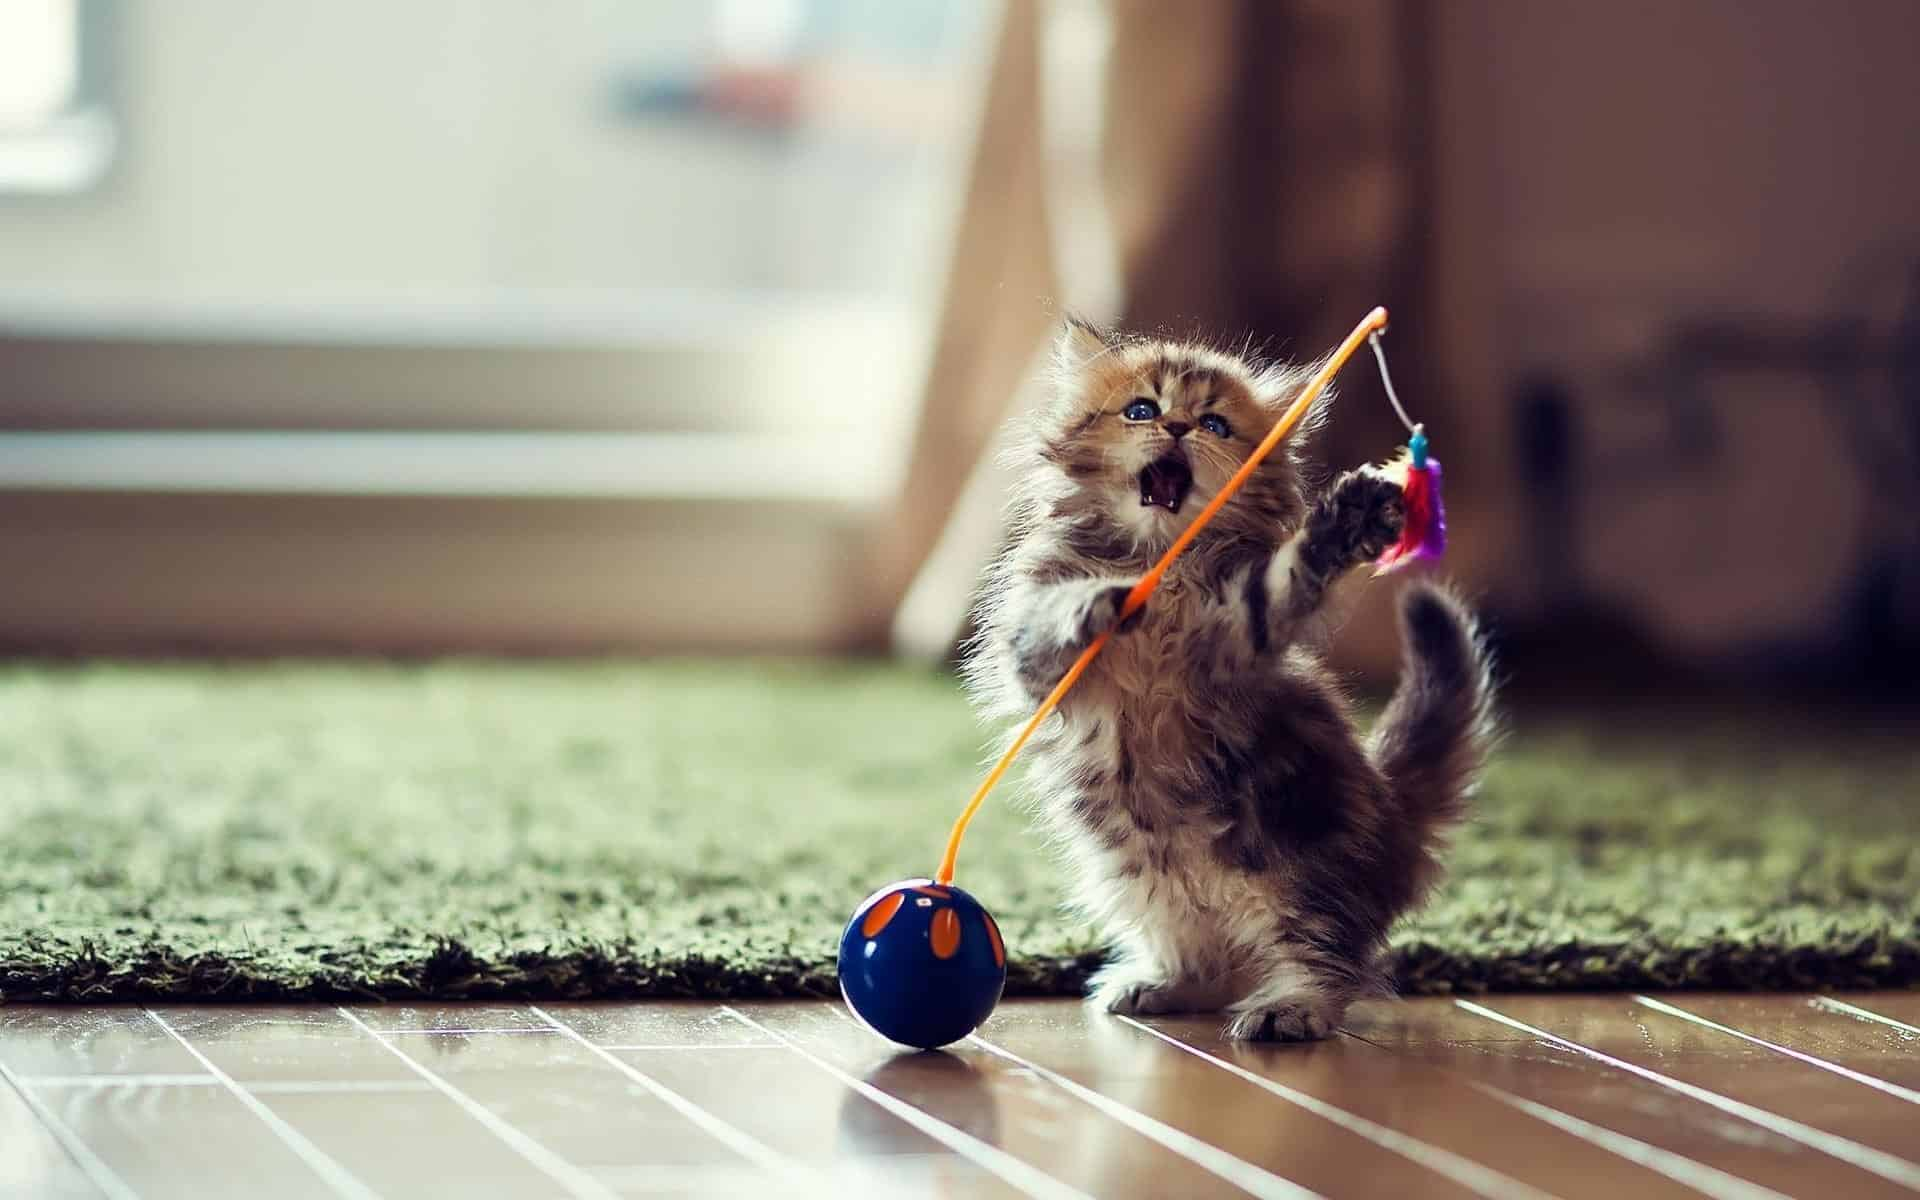 Fluffy kitten plays cat toys